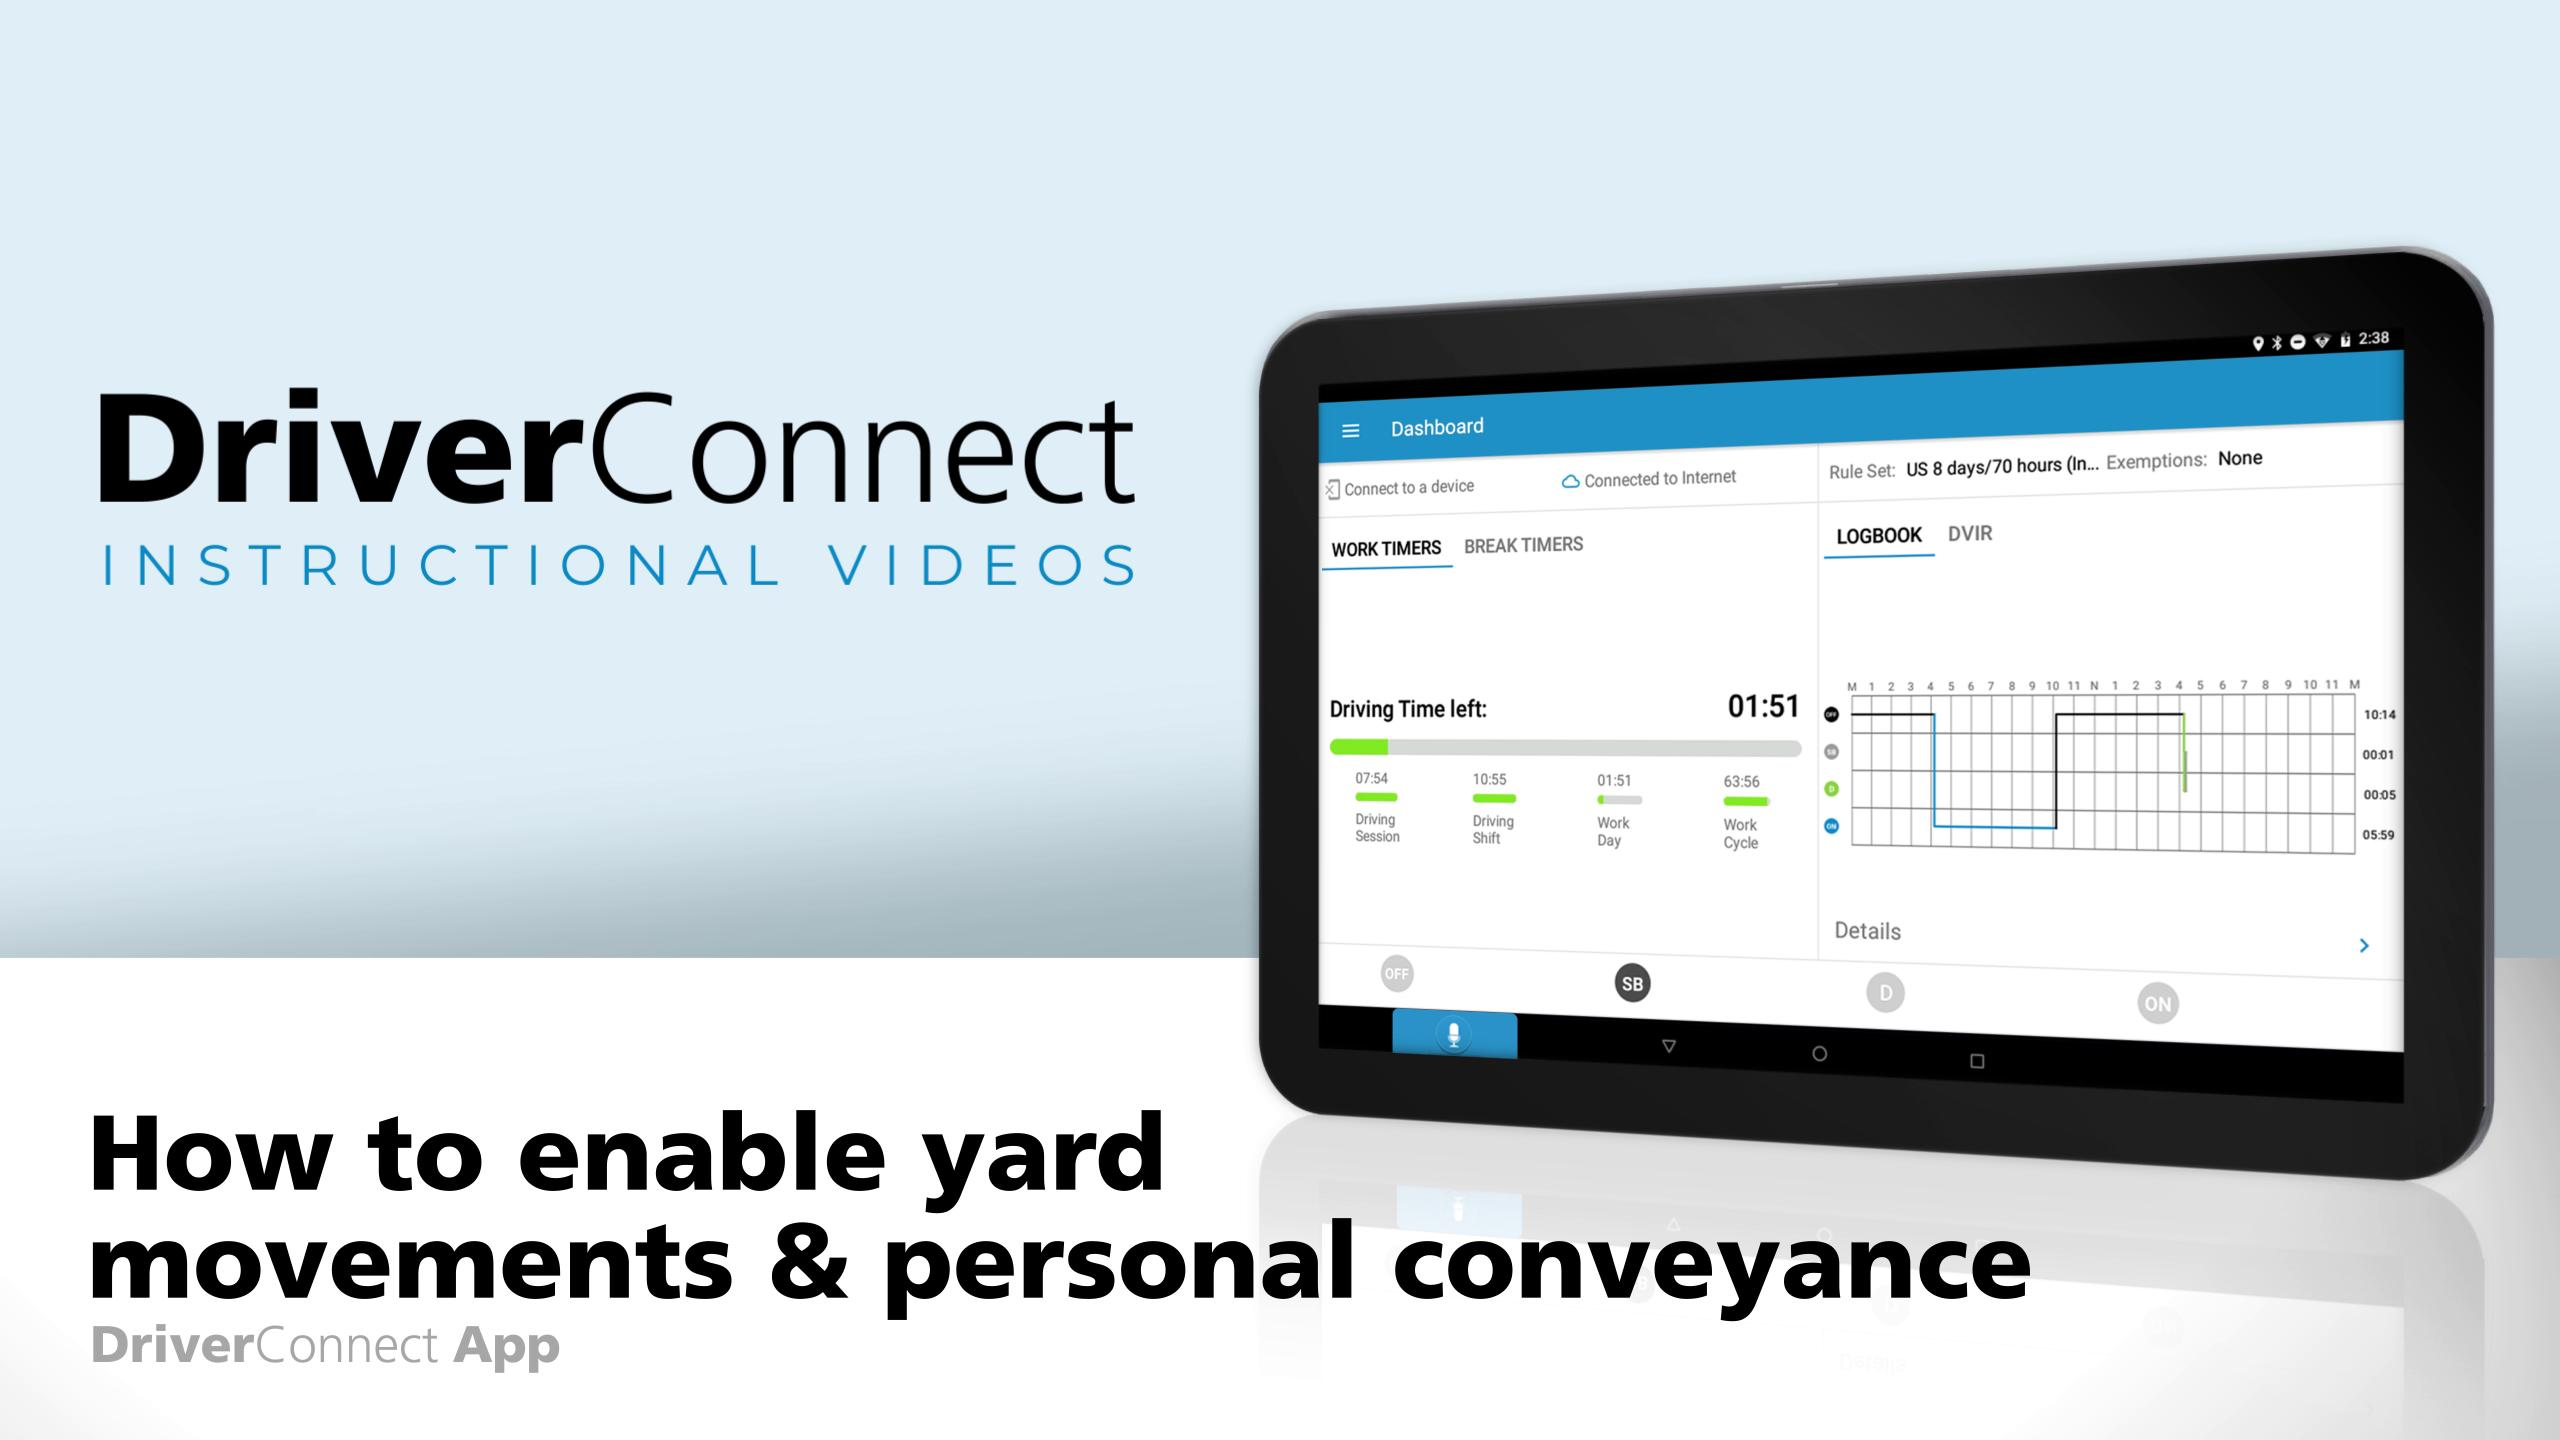 DC App How to enable yard movements and personal conveyance